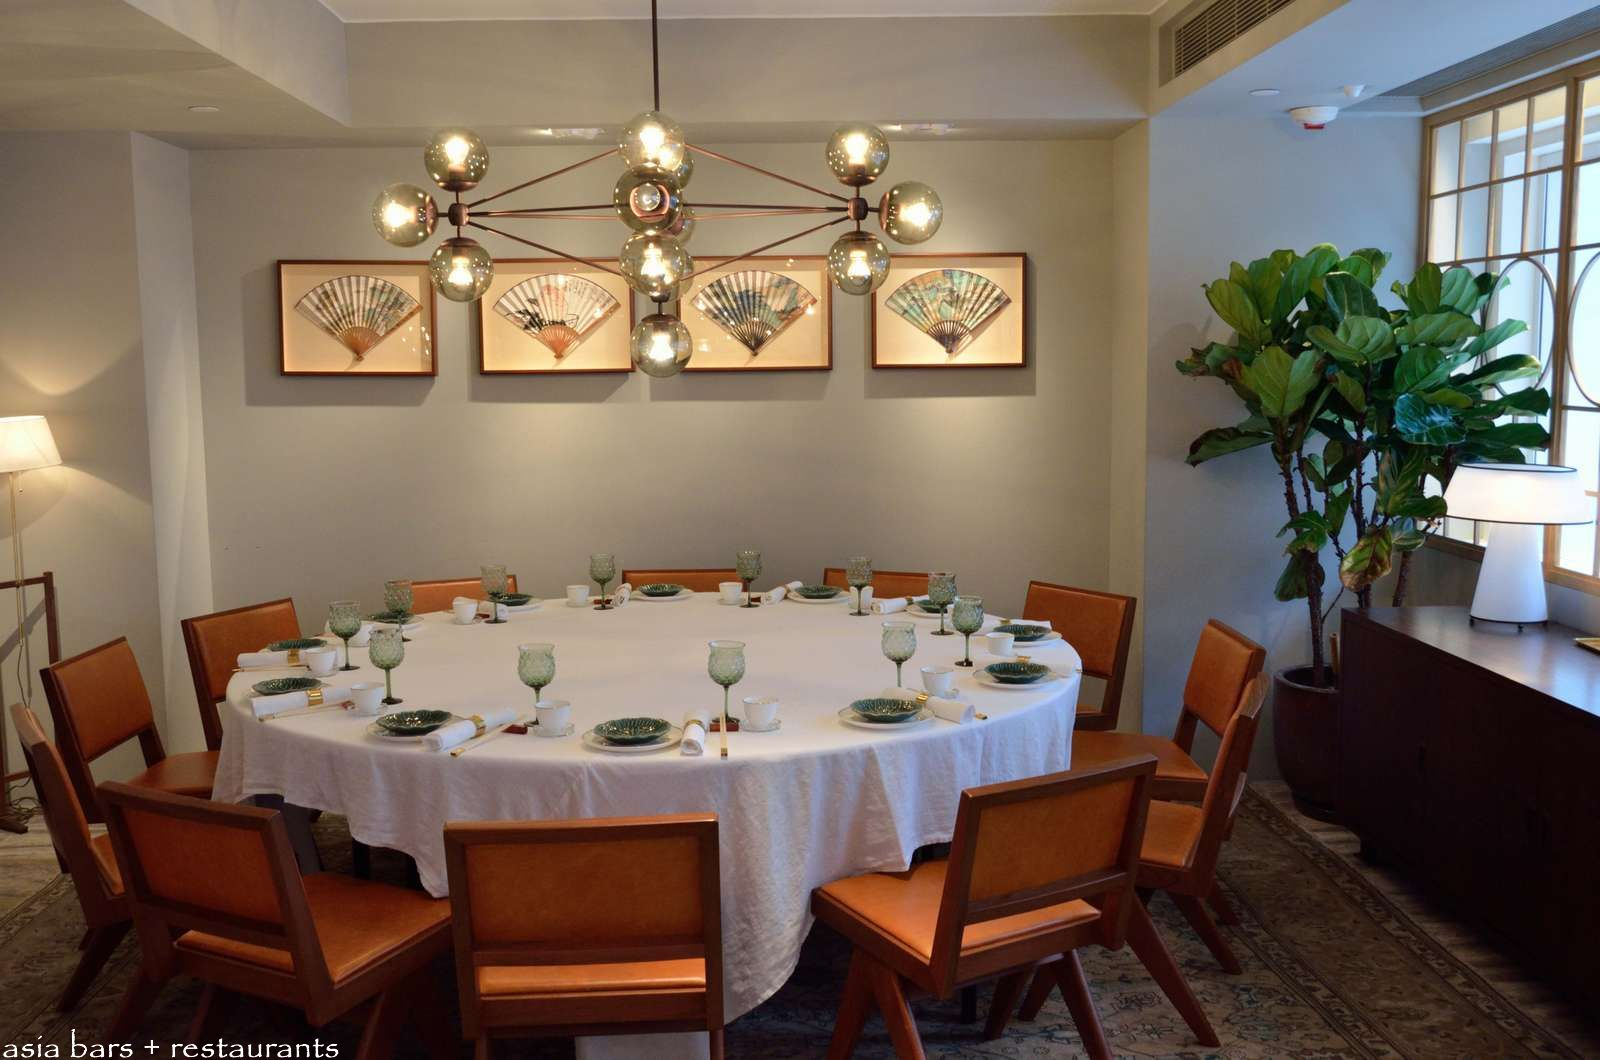 Duddell s restaurant salon art space in hong kong for Best private dining rooms hong kong